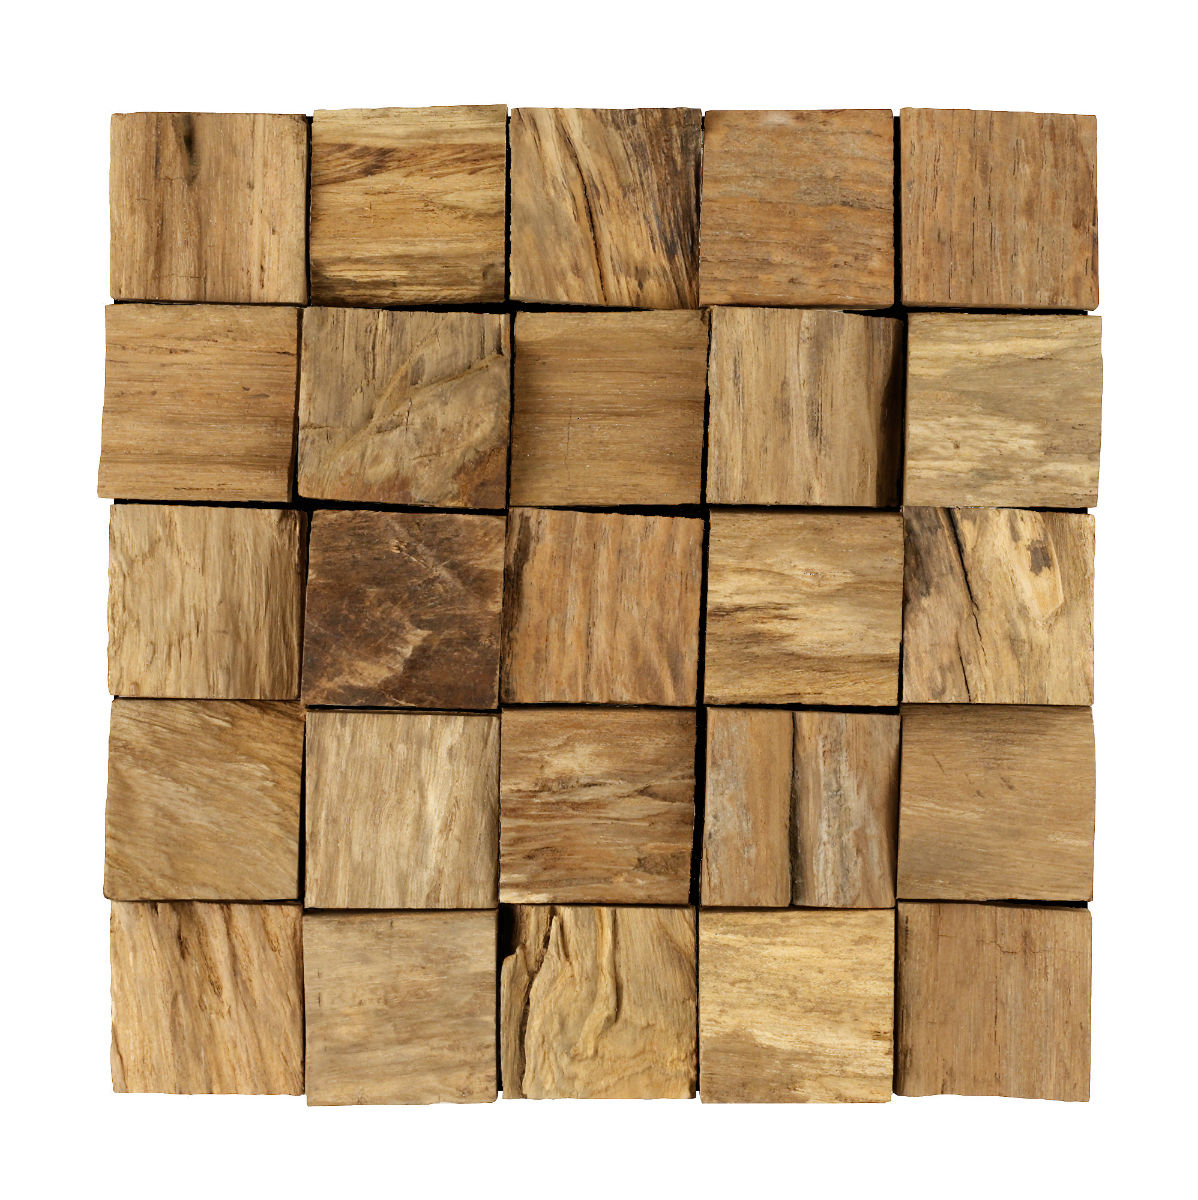 TSN-162-Teak-Wood-Cladding-Erotic-4x4